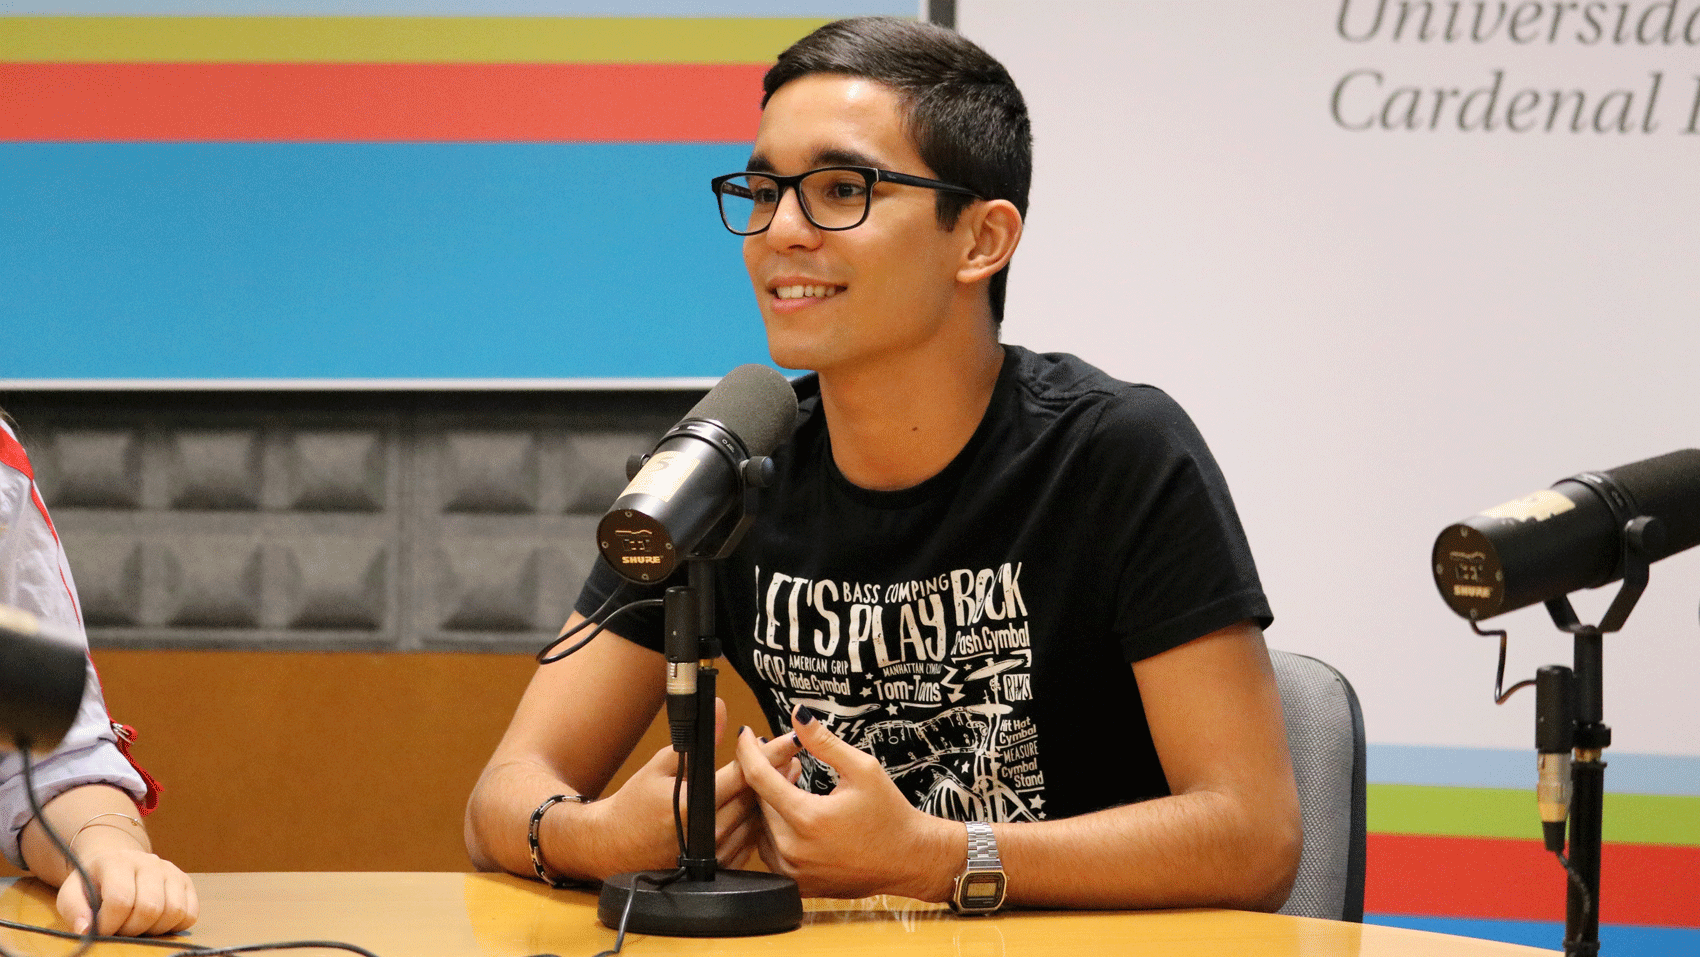 Juan. from Venezuela to Spain to become an expert in Social Media